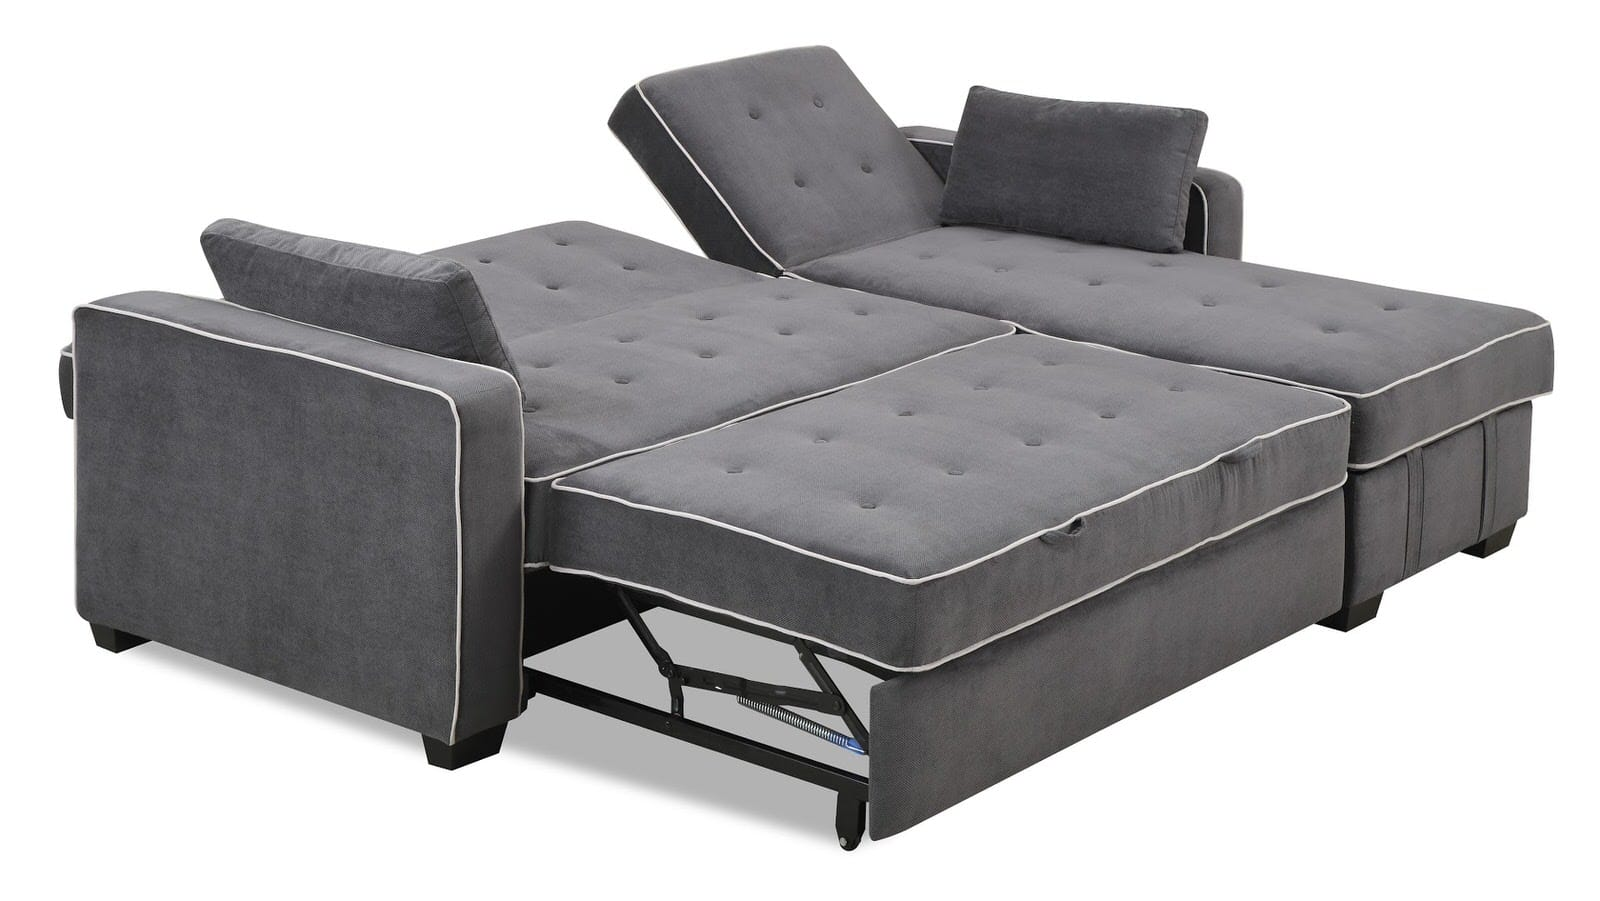 Augustine king size sofa bed moon grey by serta lifestyle - Big size couch ...